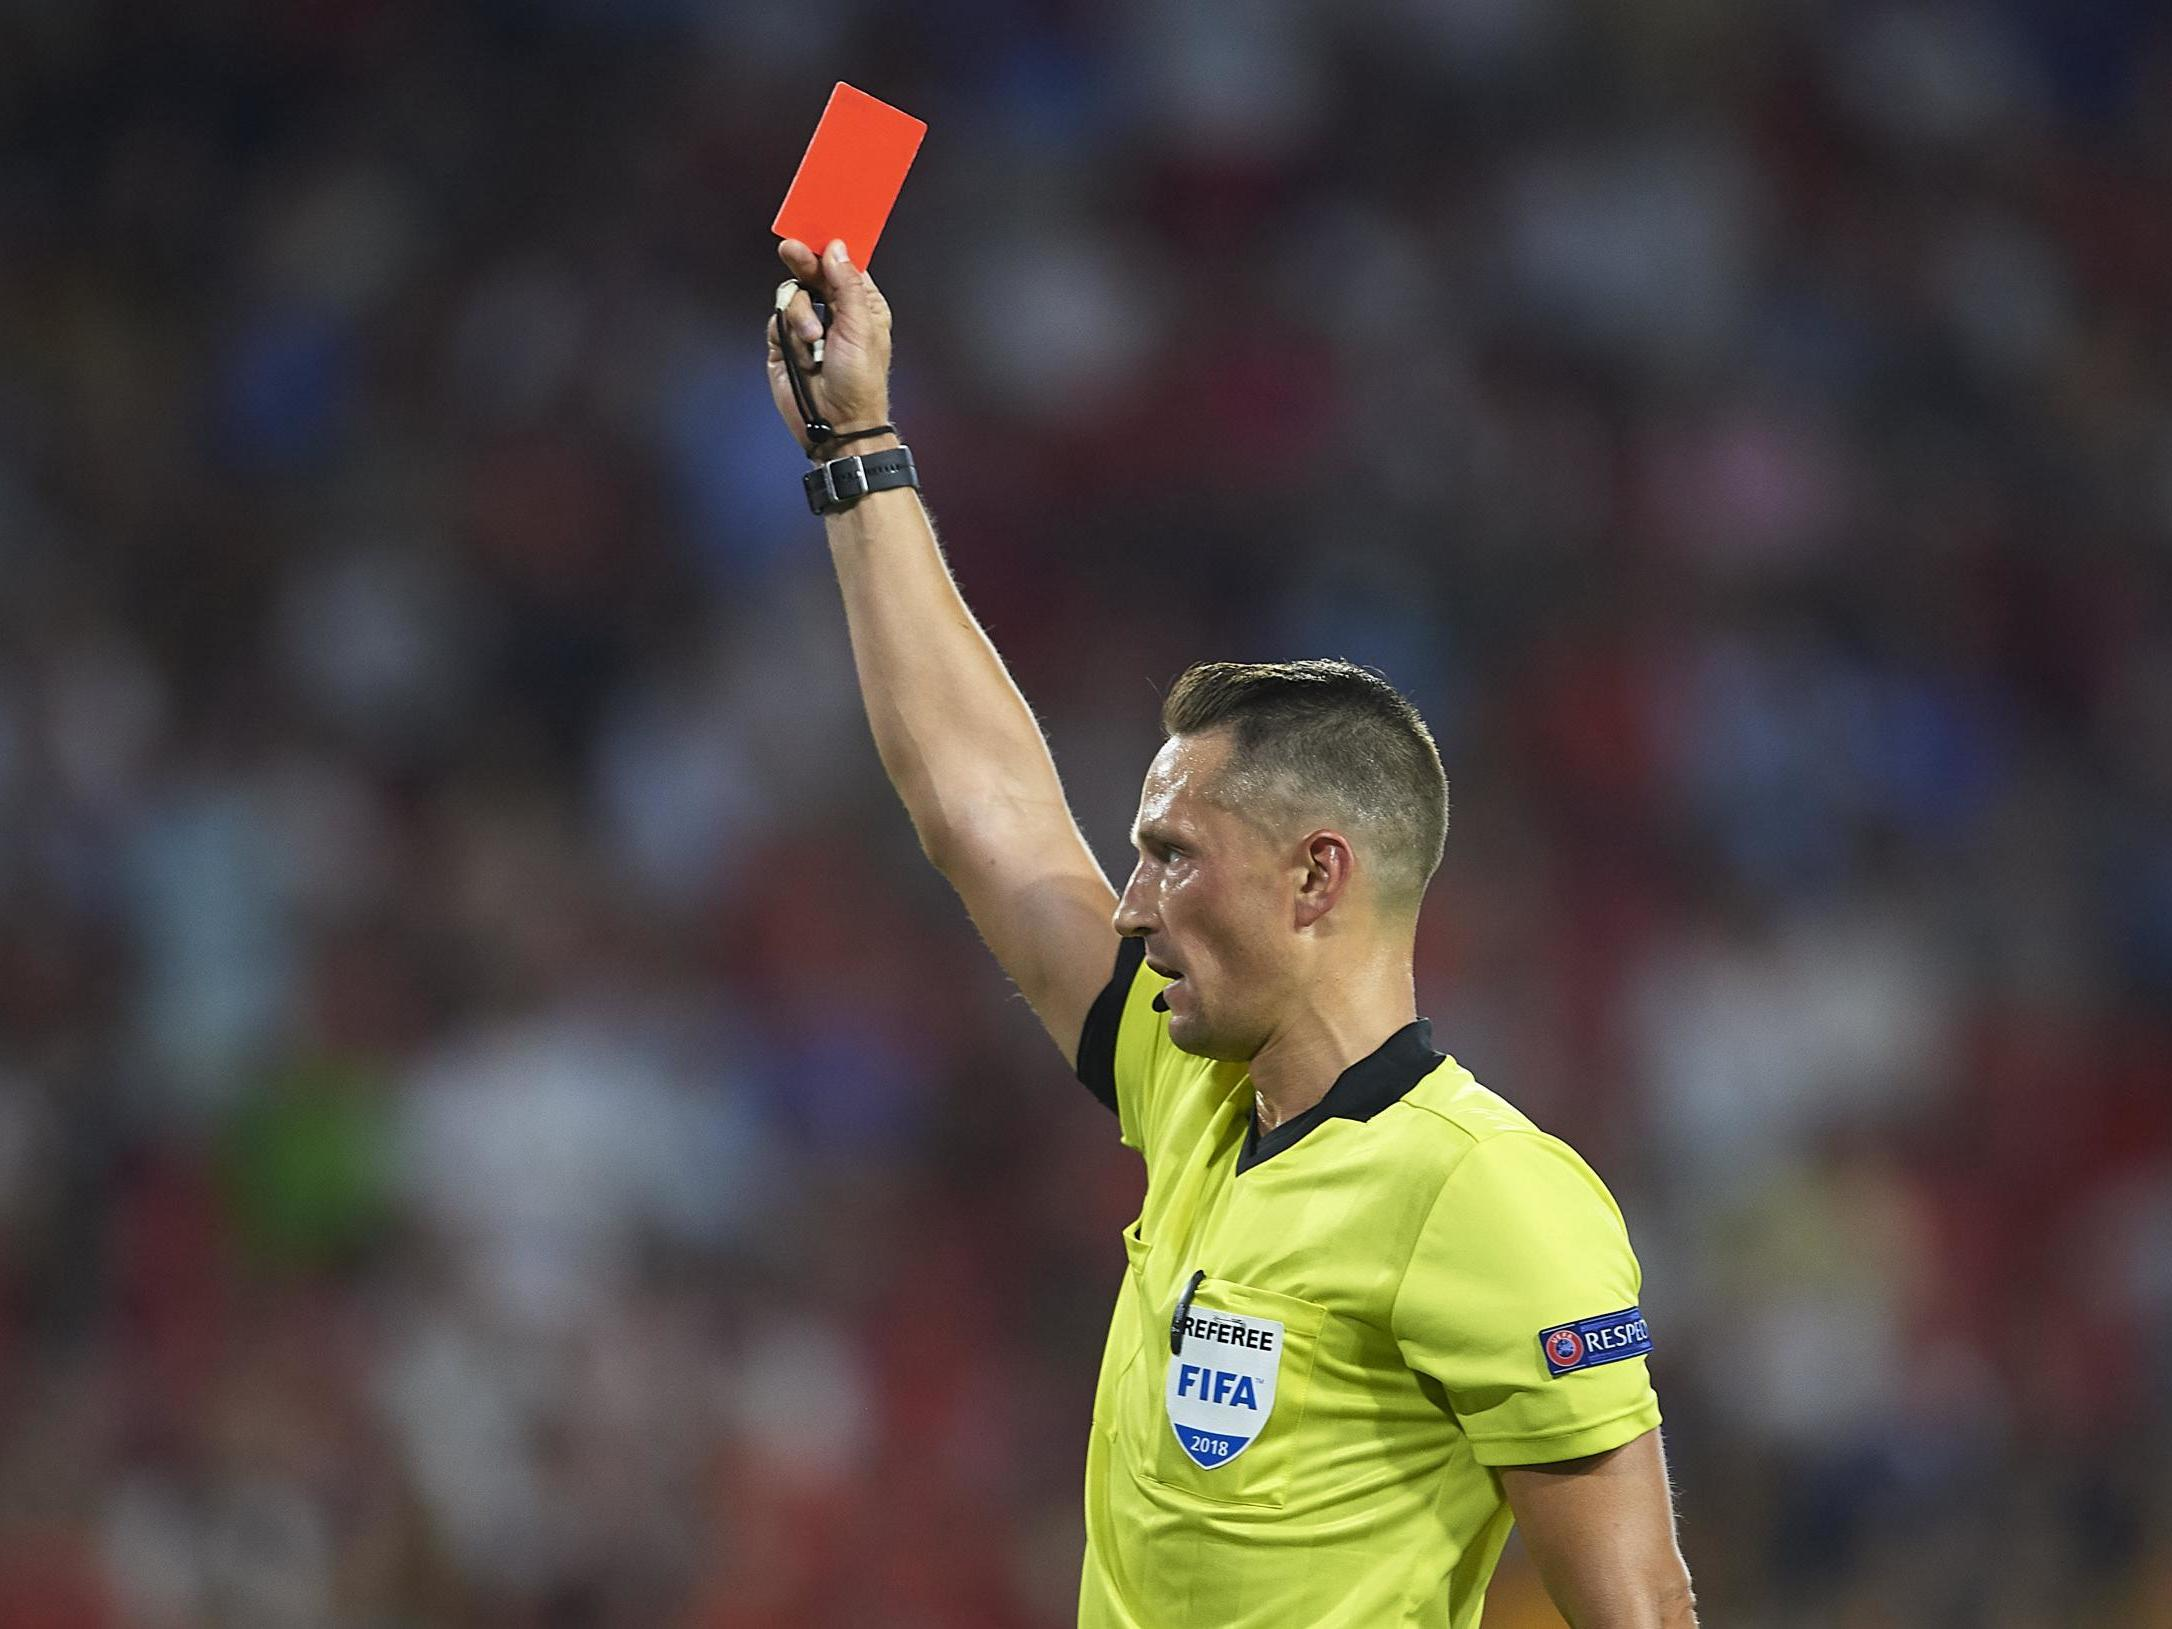 Managers to be subject to yellow and red cards under new disciplinary rules